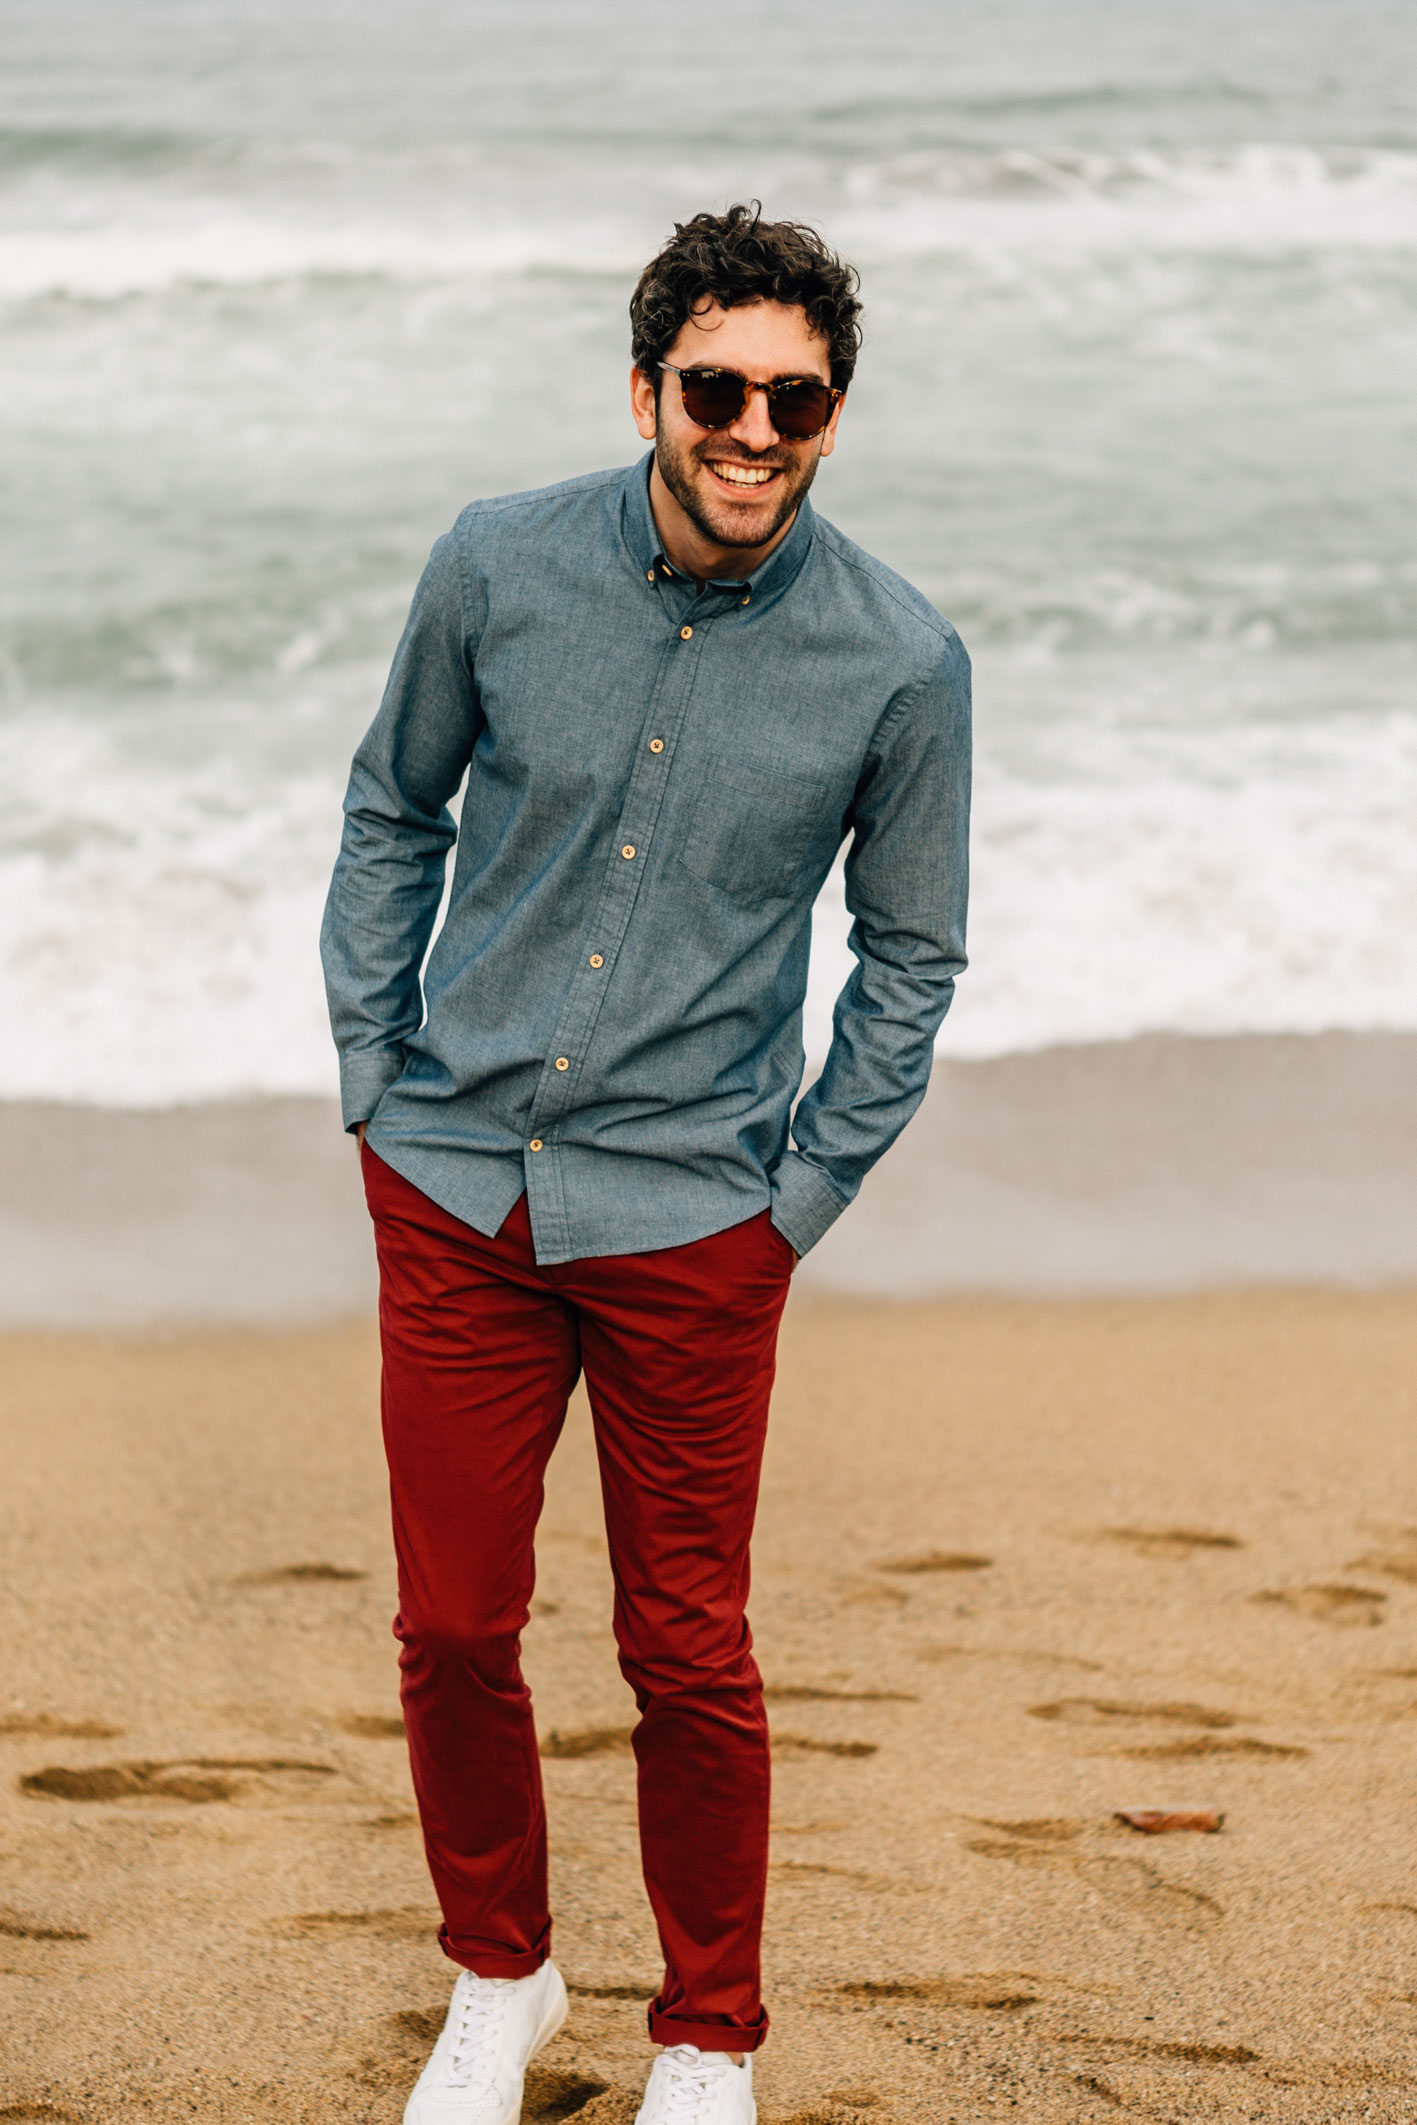 Chemise Chambray boutons bois chino rouge